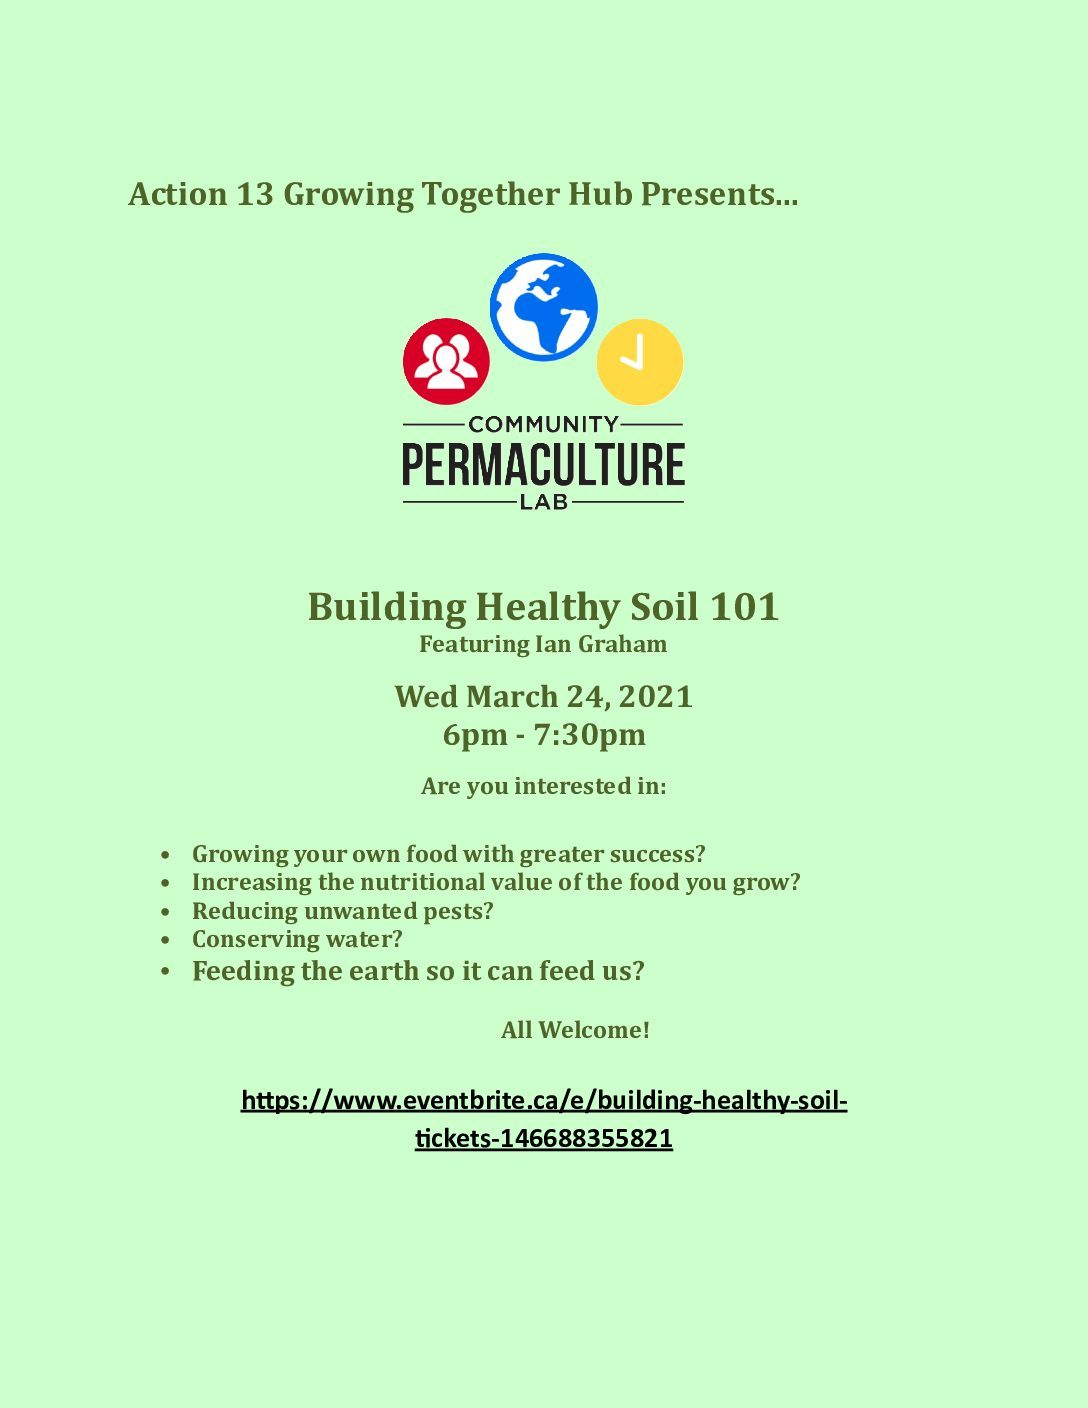 Building healthy soil